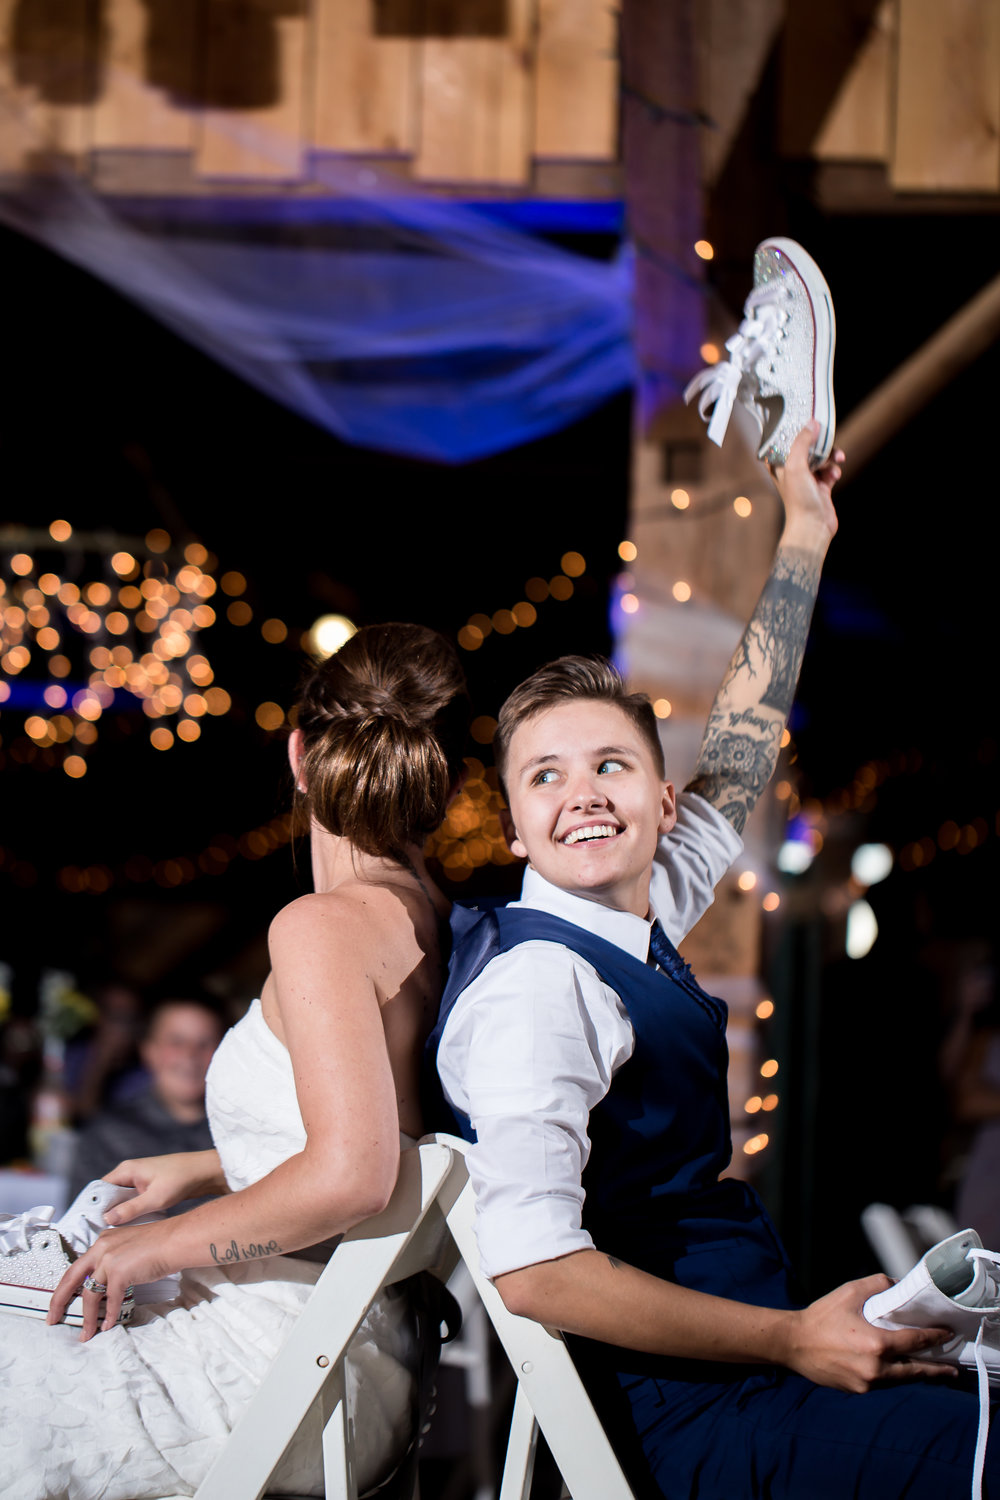 Gandjos_Tinko_BackSeatPhotography_backseatphoto99.JPG